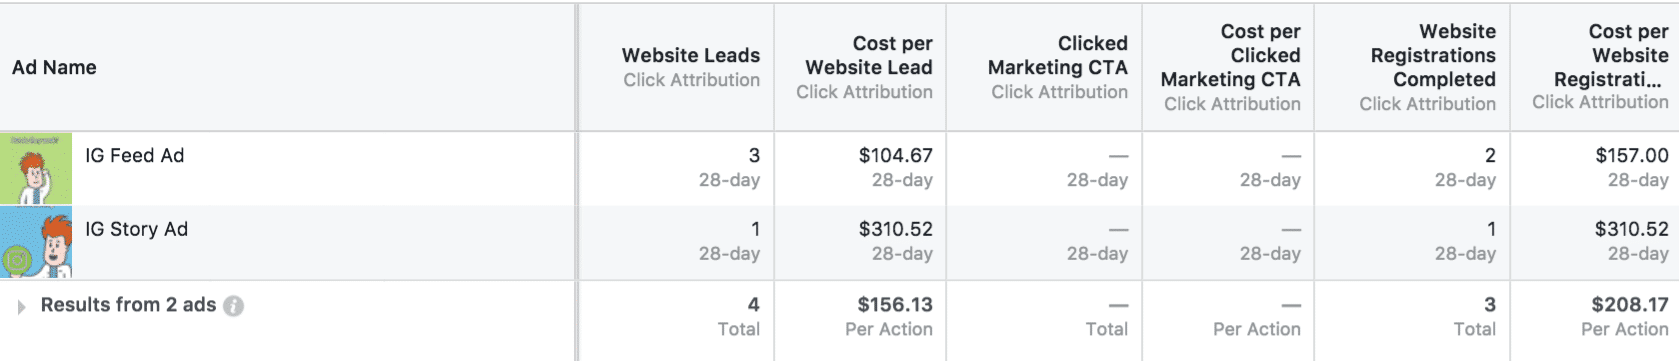 6. Leads and free trials from Instagram ads